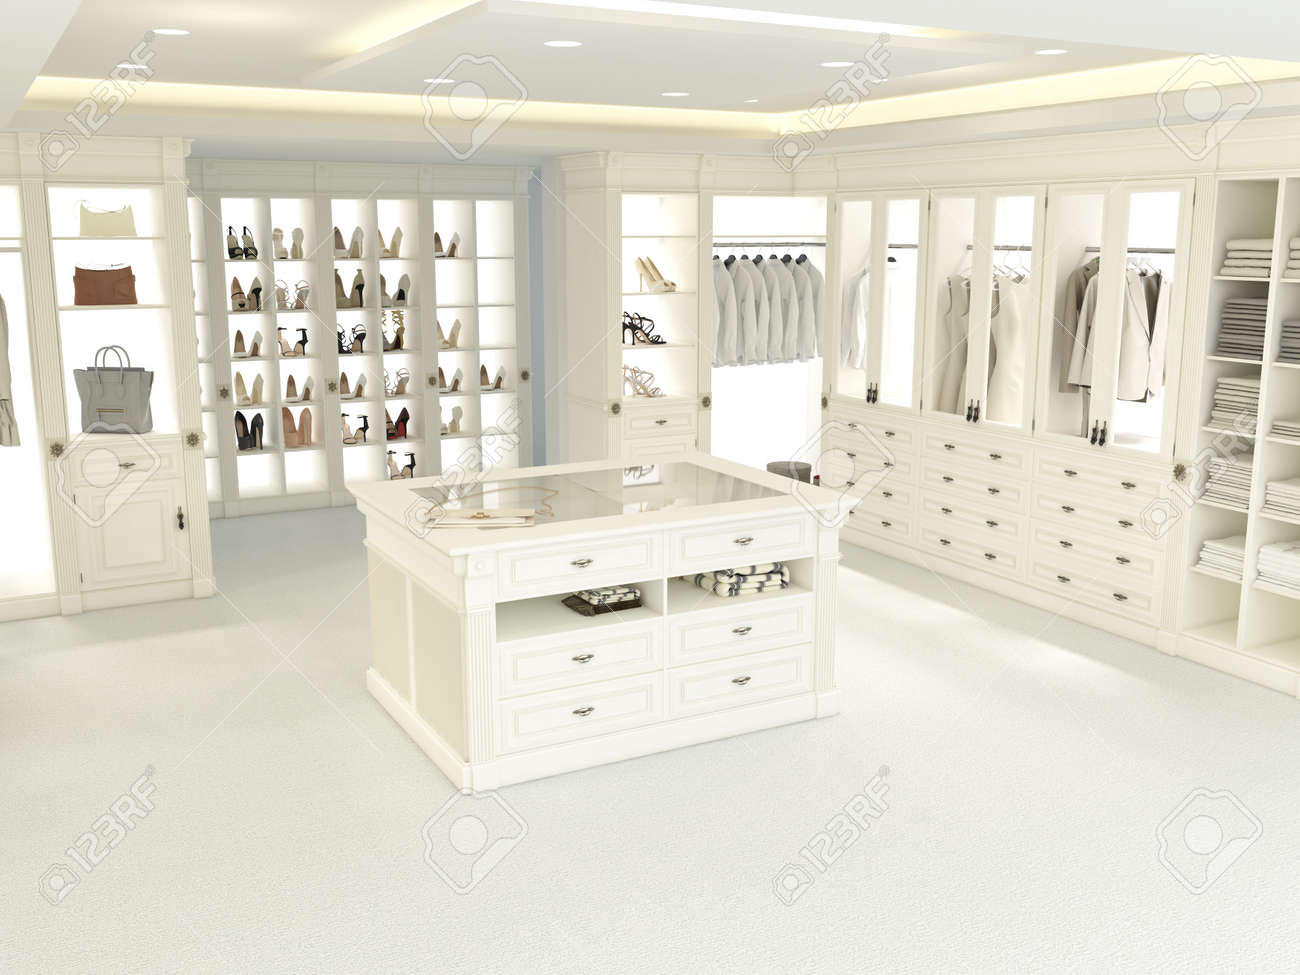 An American Luxury Walkin Closet With Many Space. 3d Rendering Stock Photo    41192217